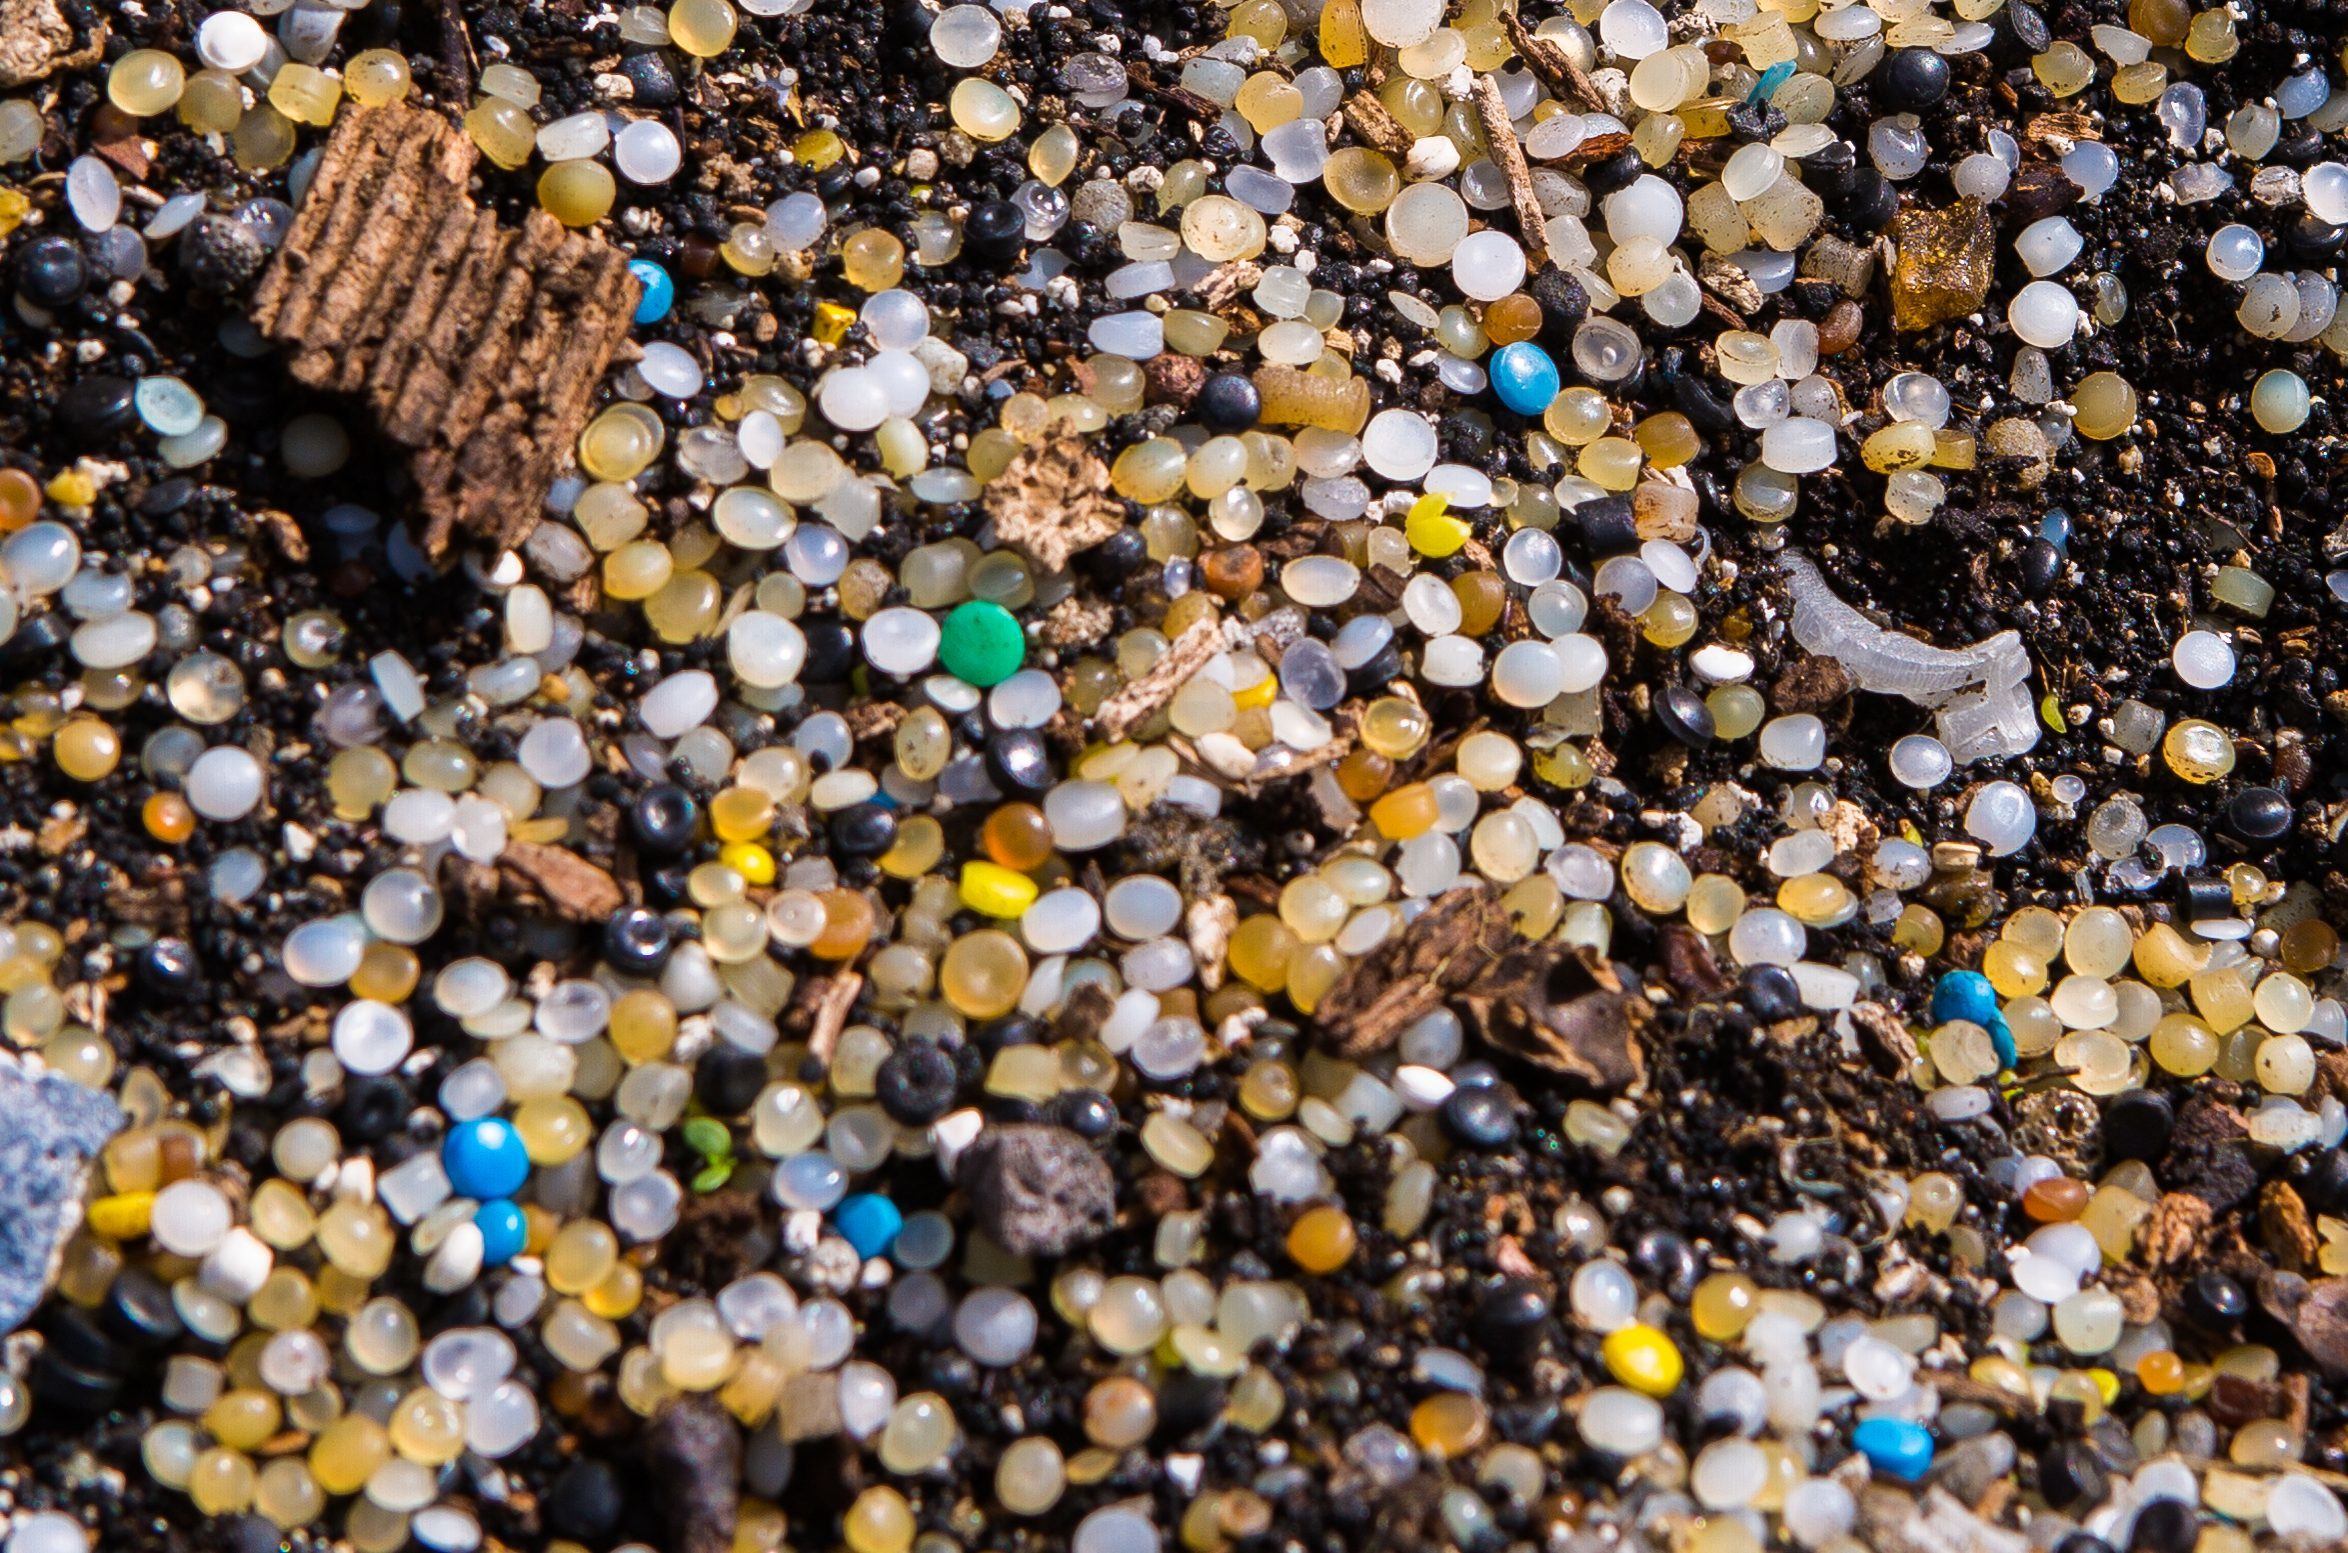 Thousands of plastic nurdles washed up on the shore in North Queensferry,